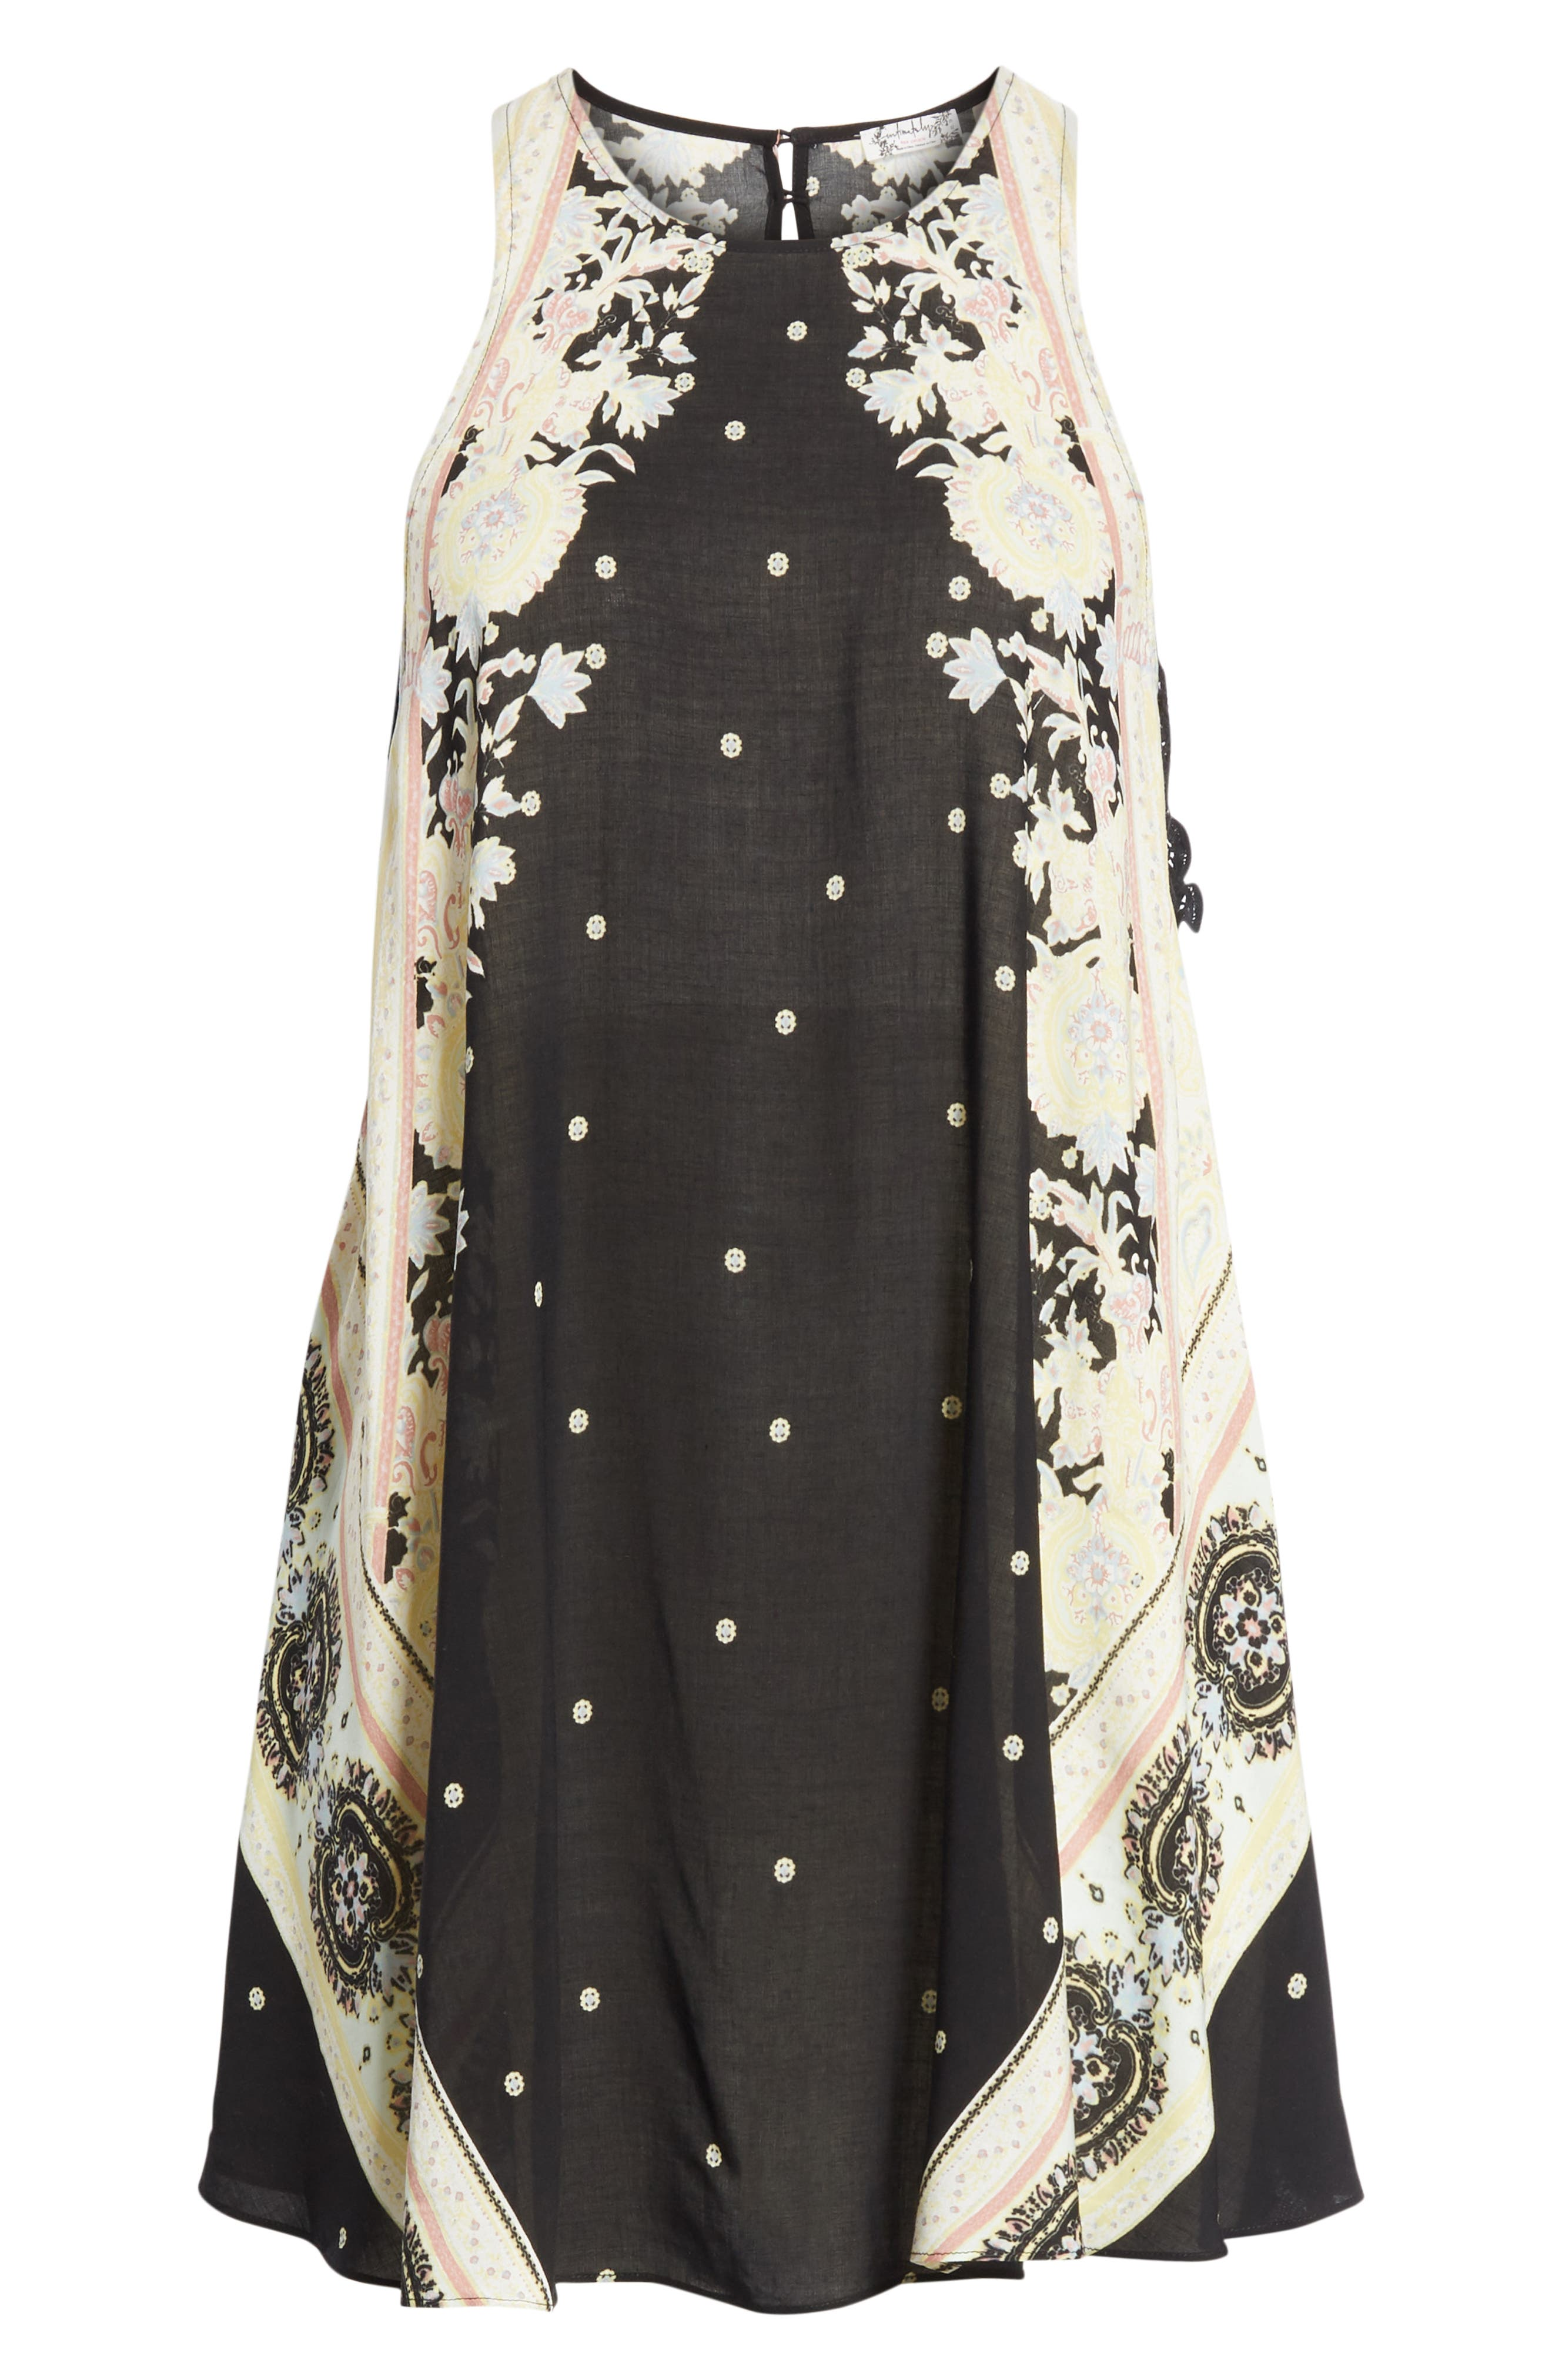 Darjeeling Print Minidress,                             Alternate thumbnail 8, color,                             BLACK COMBO